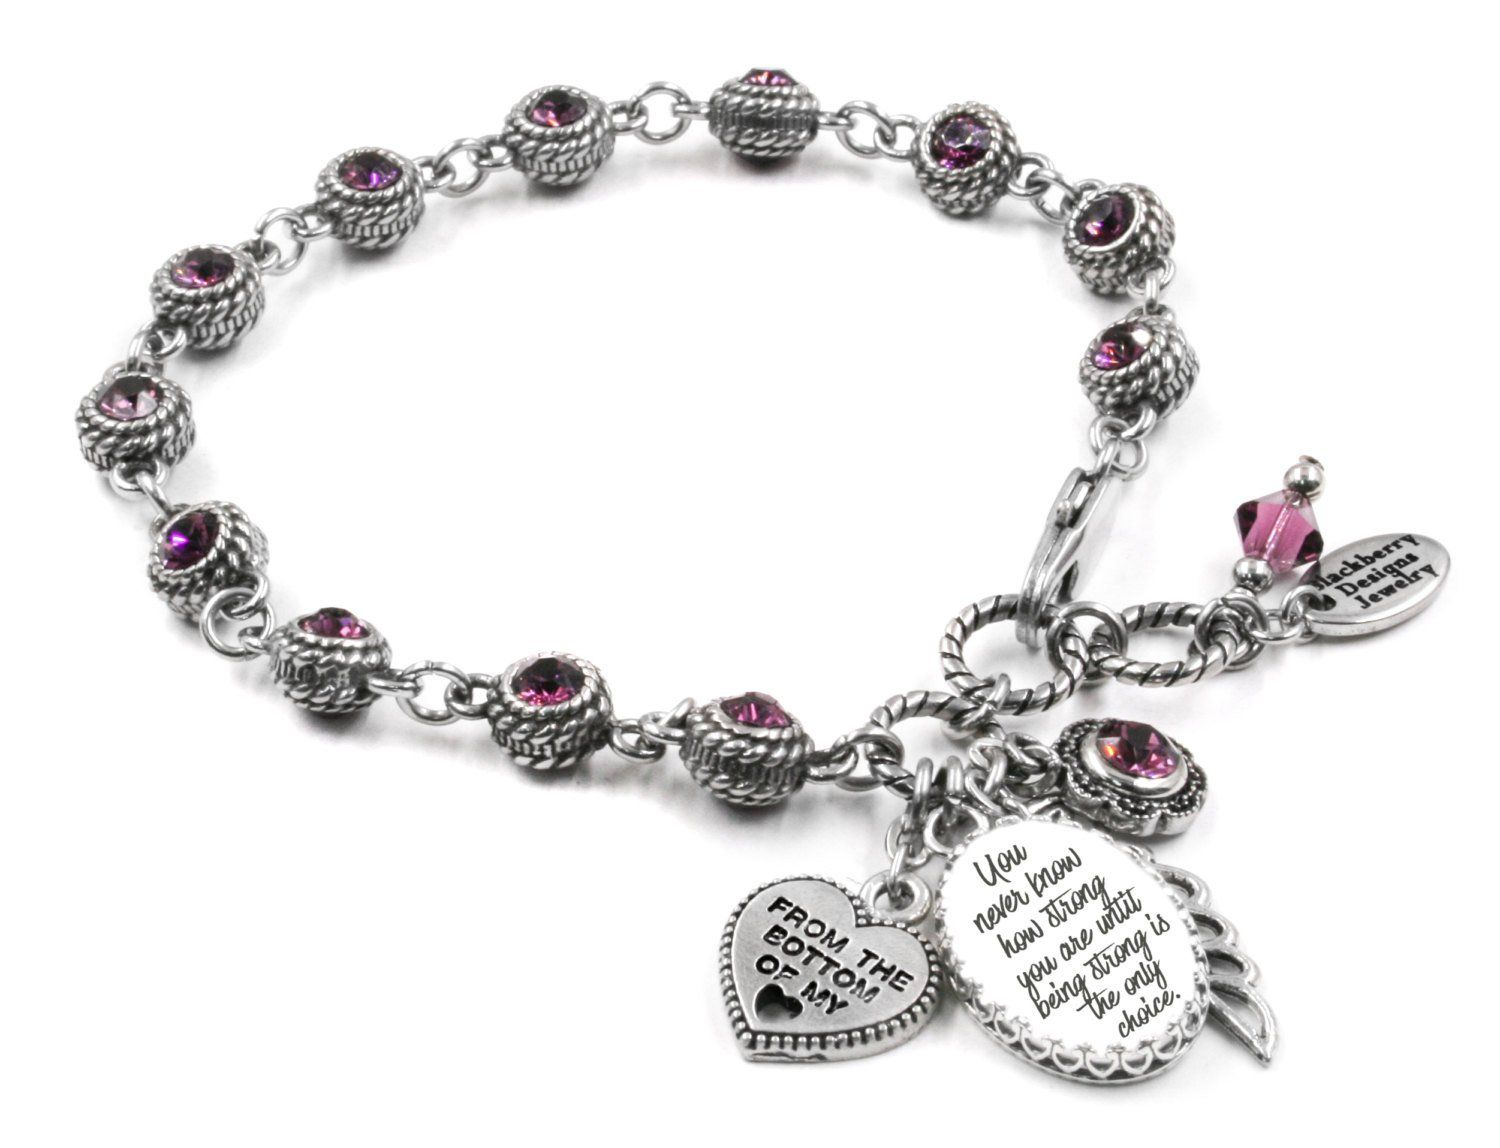 Personalized Quote Jewelry Jewelry, Jewelry quotes